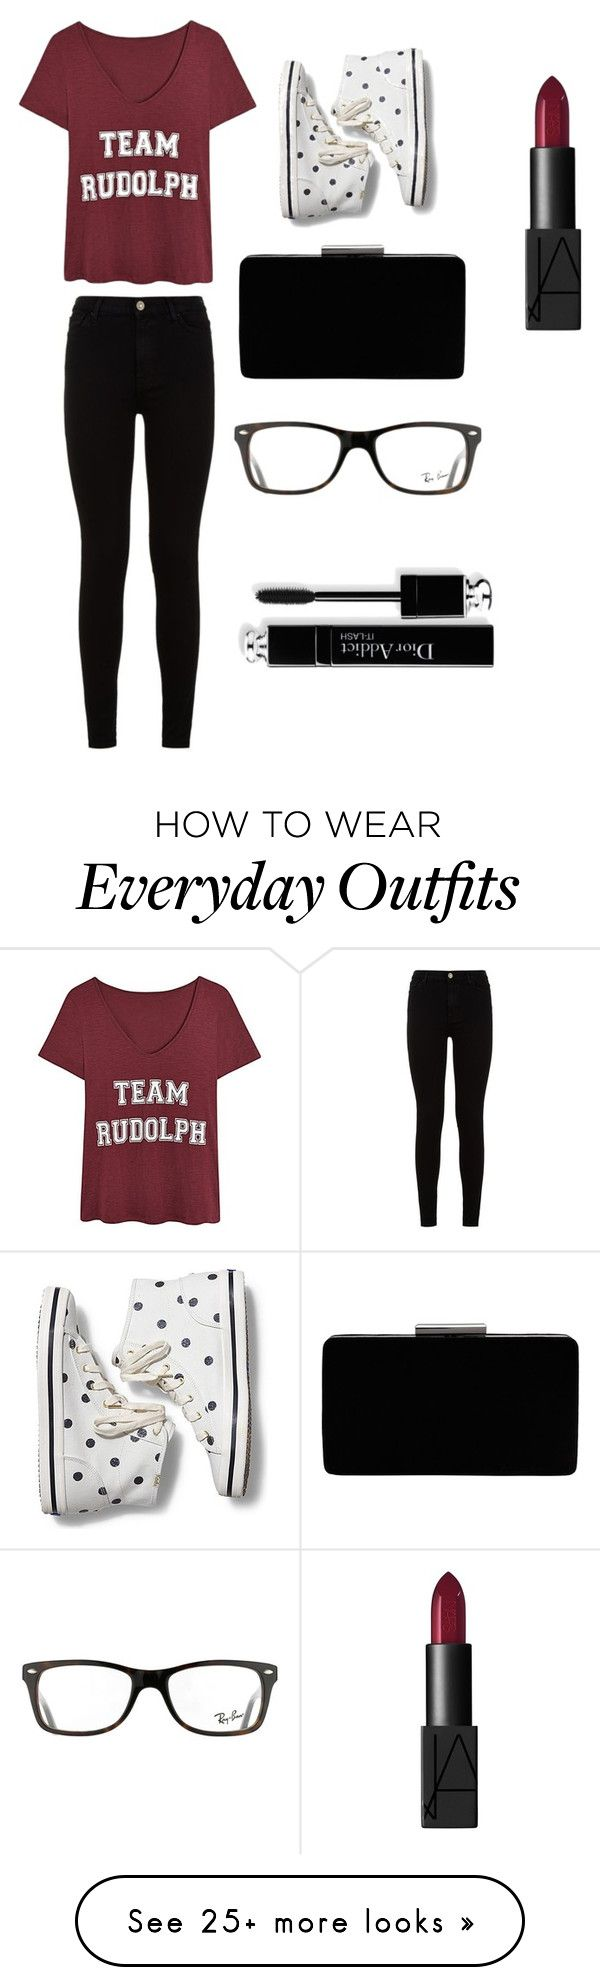 """""""Everyday Outfit #2"""" by flighht on Polyvore featuring 7 For All Mankind, Keds, John Lewis, Ray-Ban and NARS Cosmetics"""